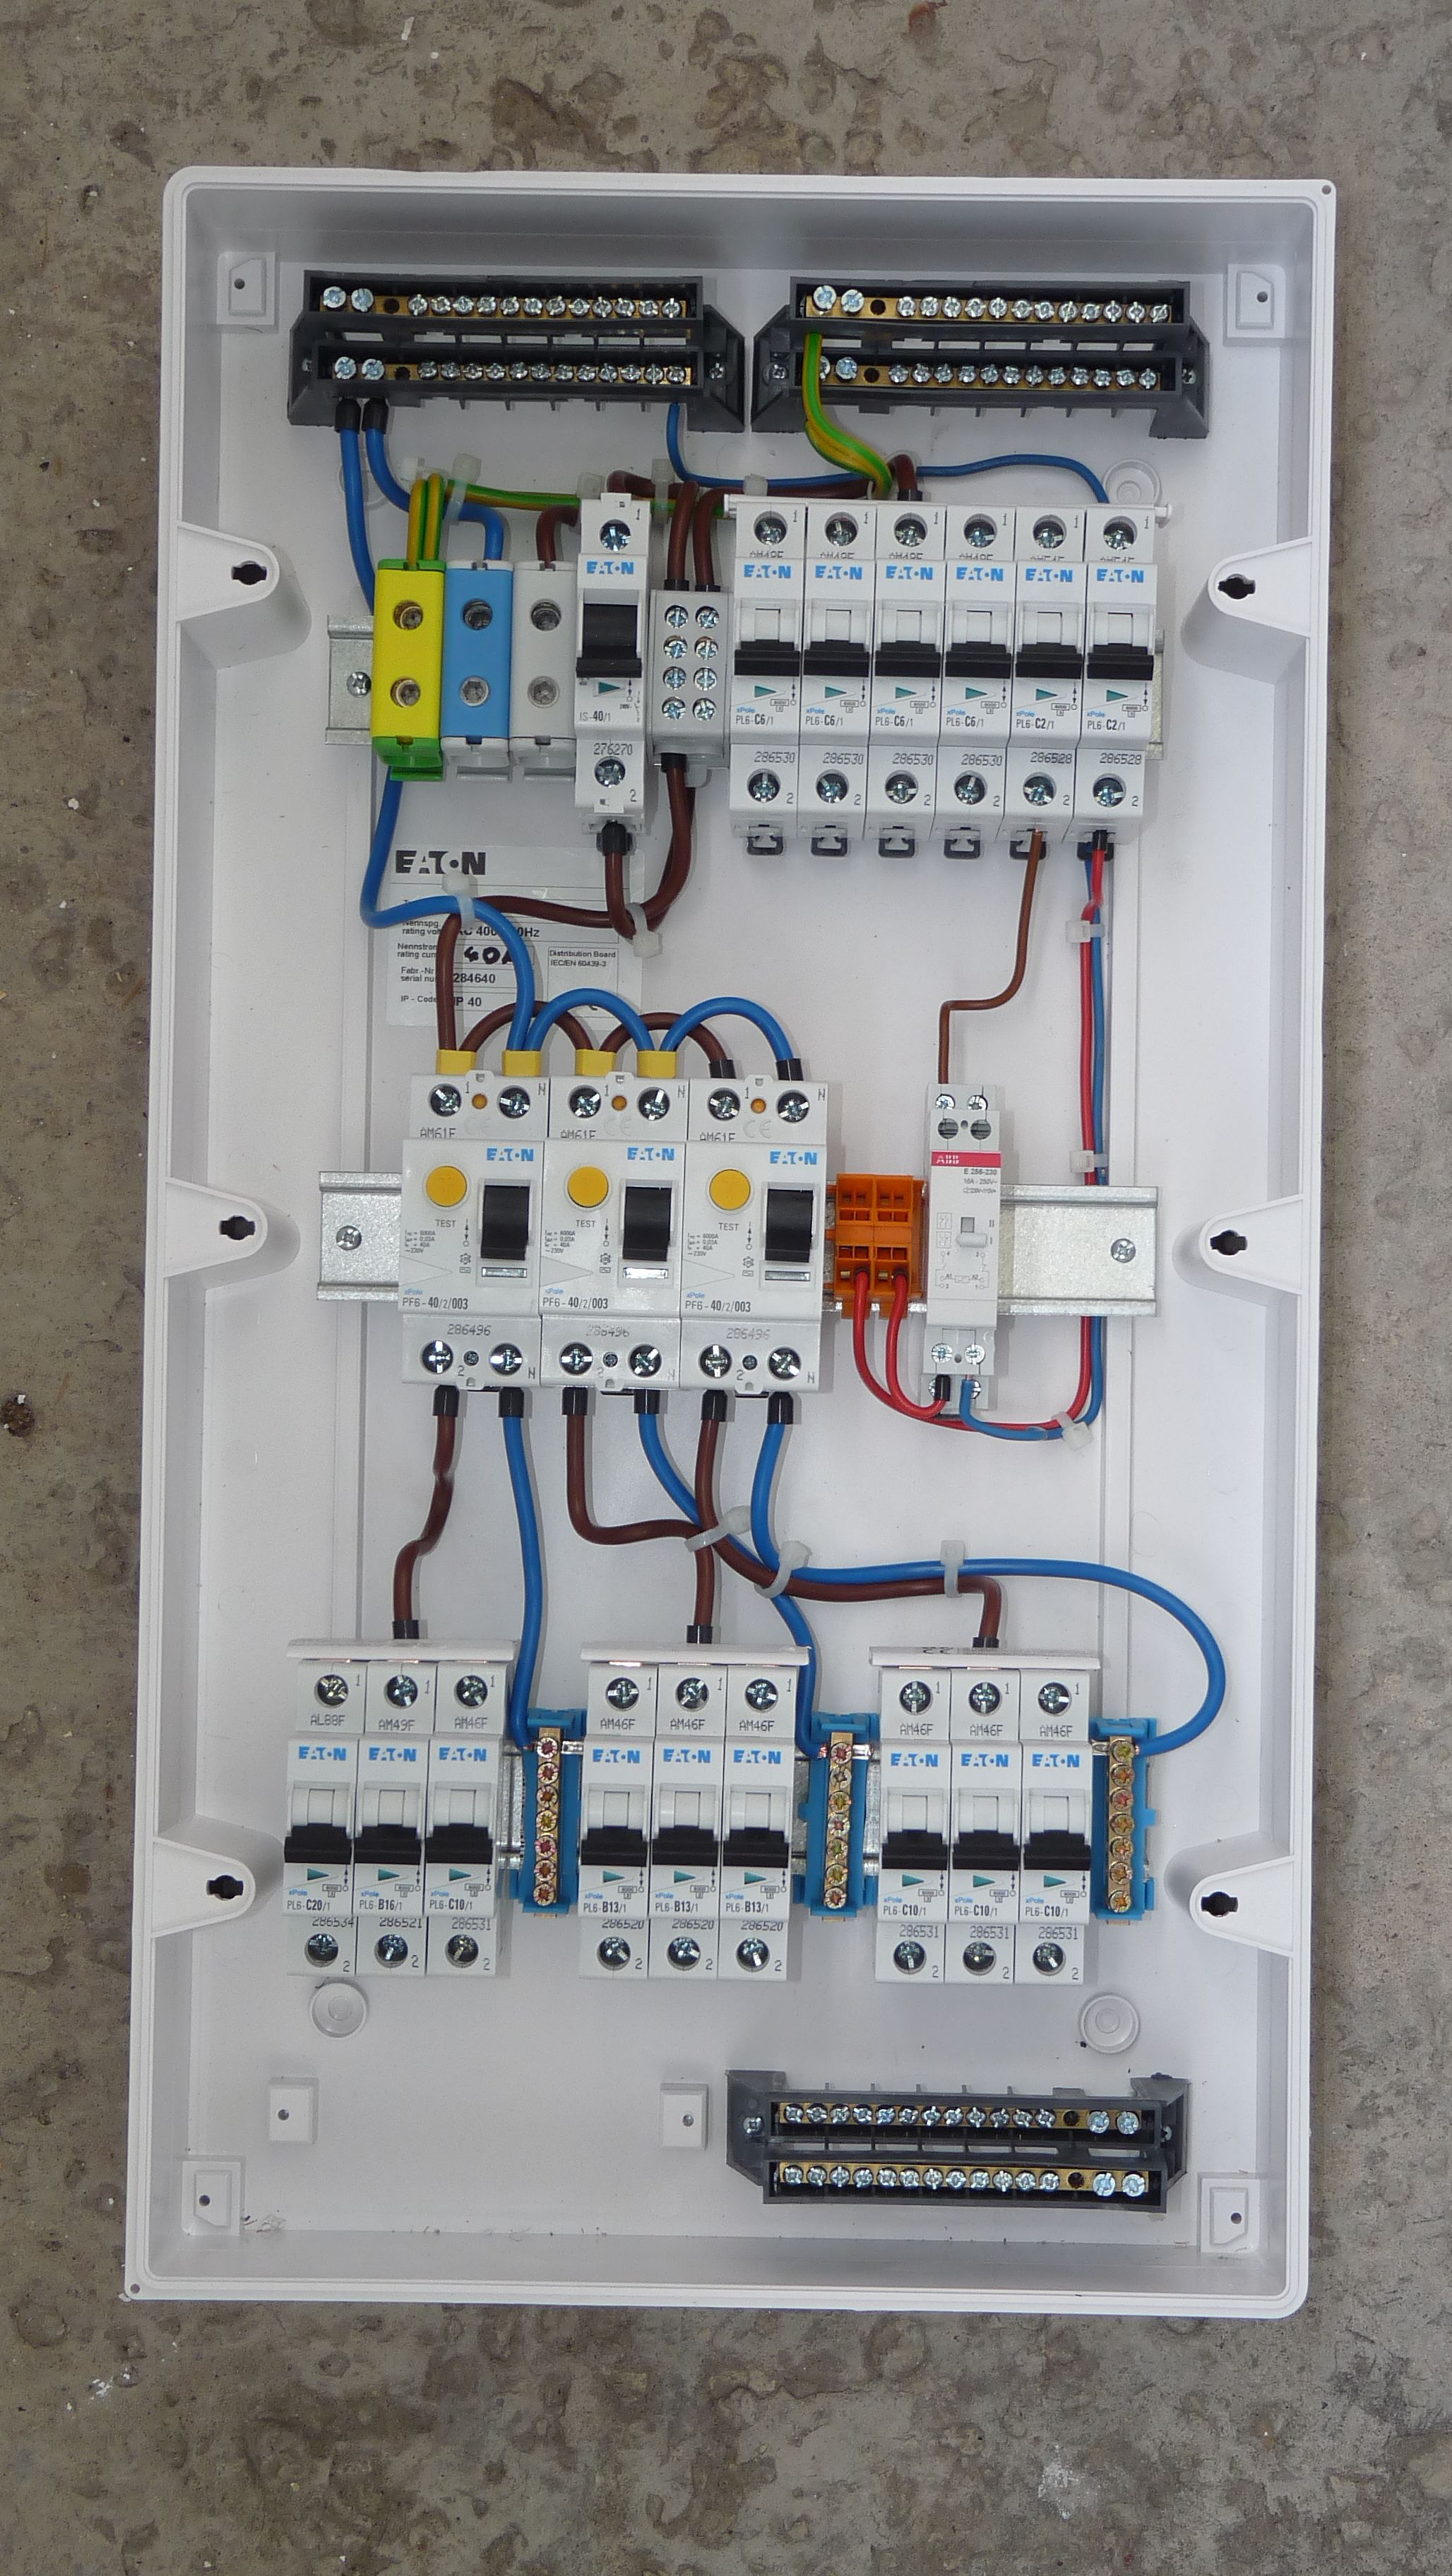 Pin by kit on Электро | Pinterest | Electrical wiring, Electrical ...